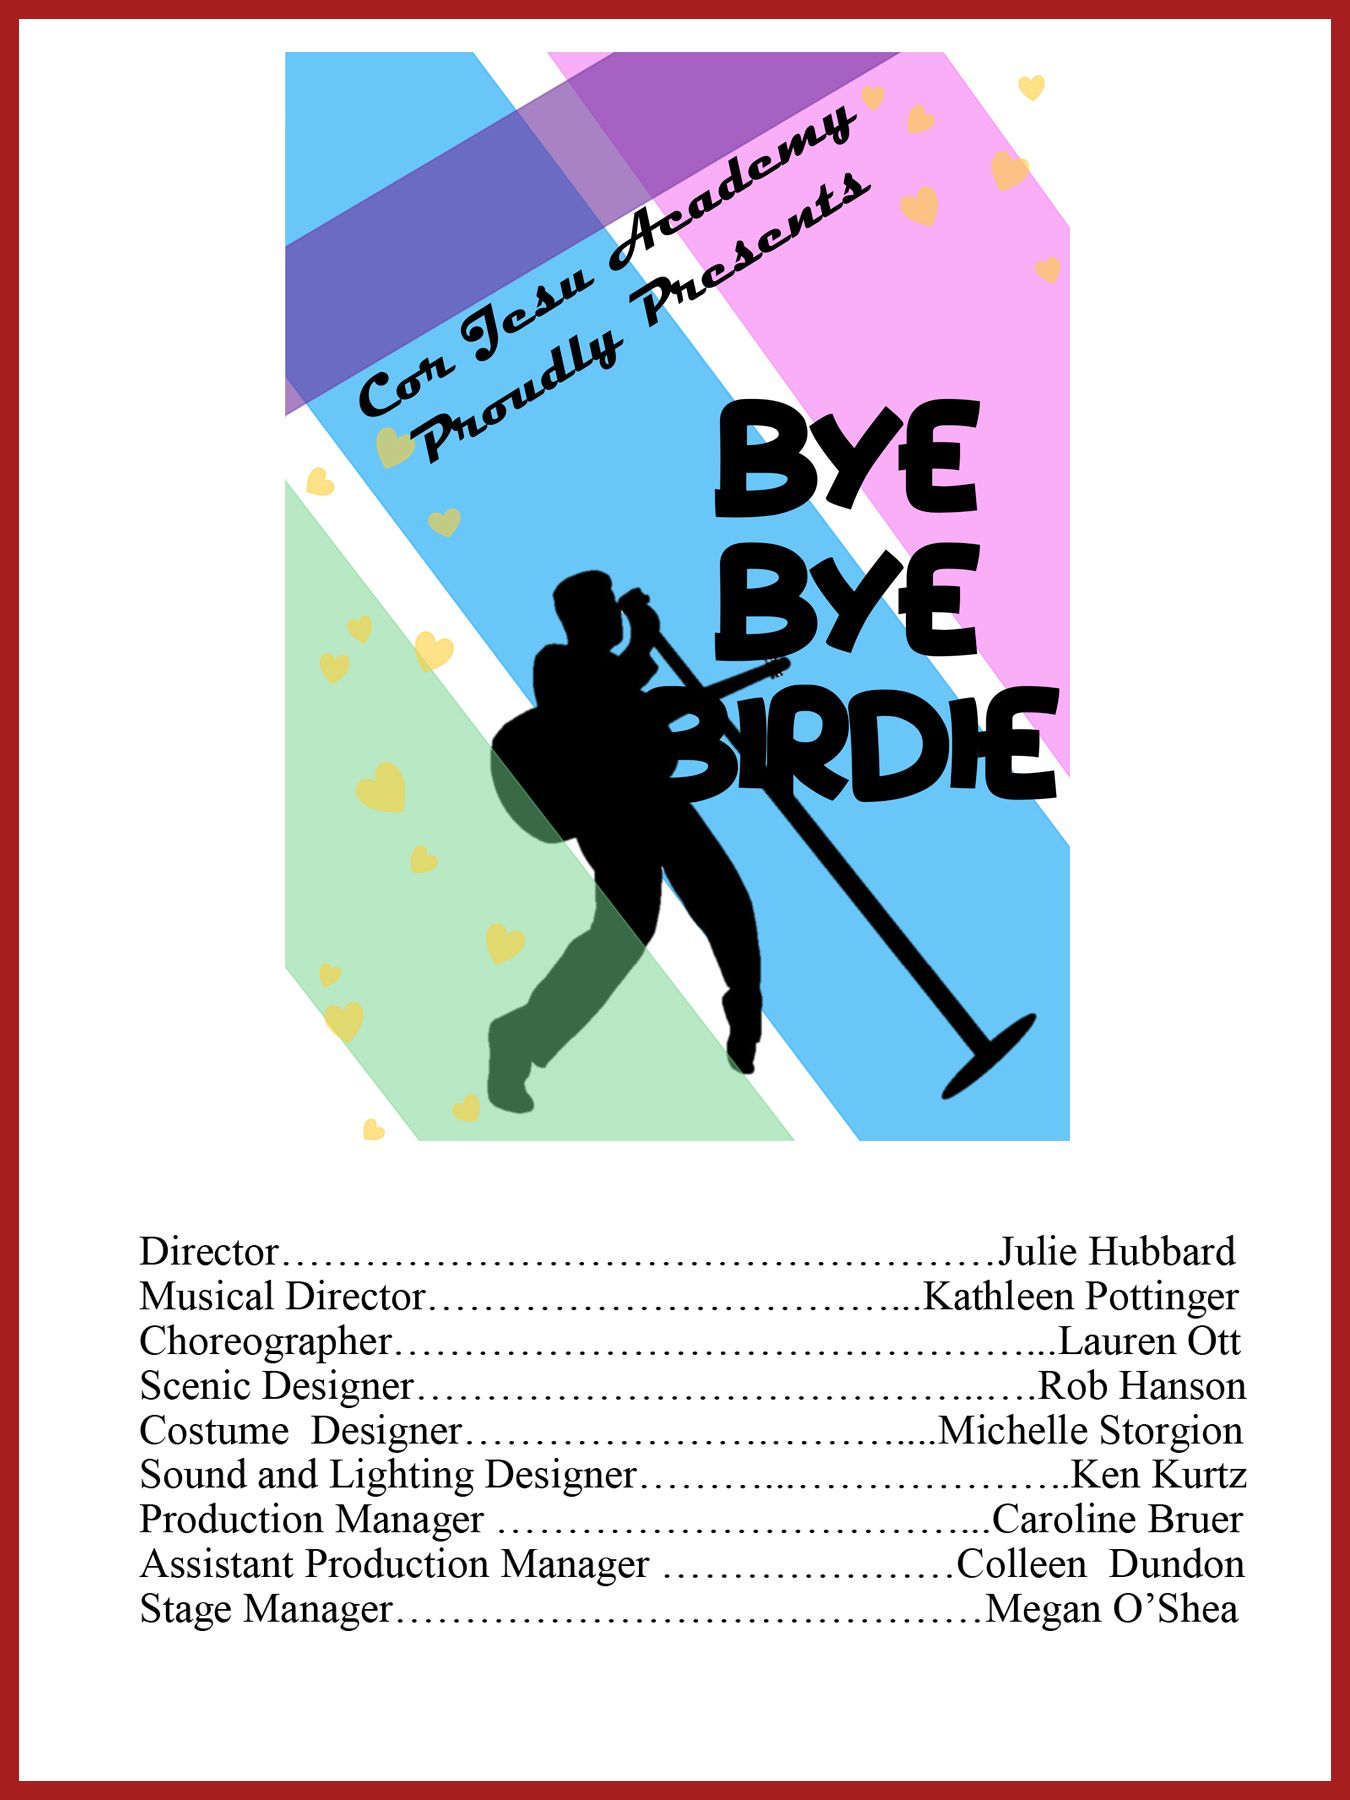 Bye Bye Birdie Cover Artwork